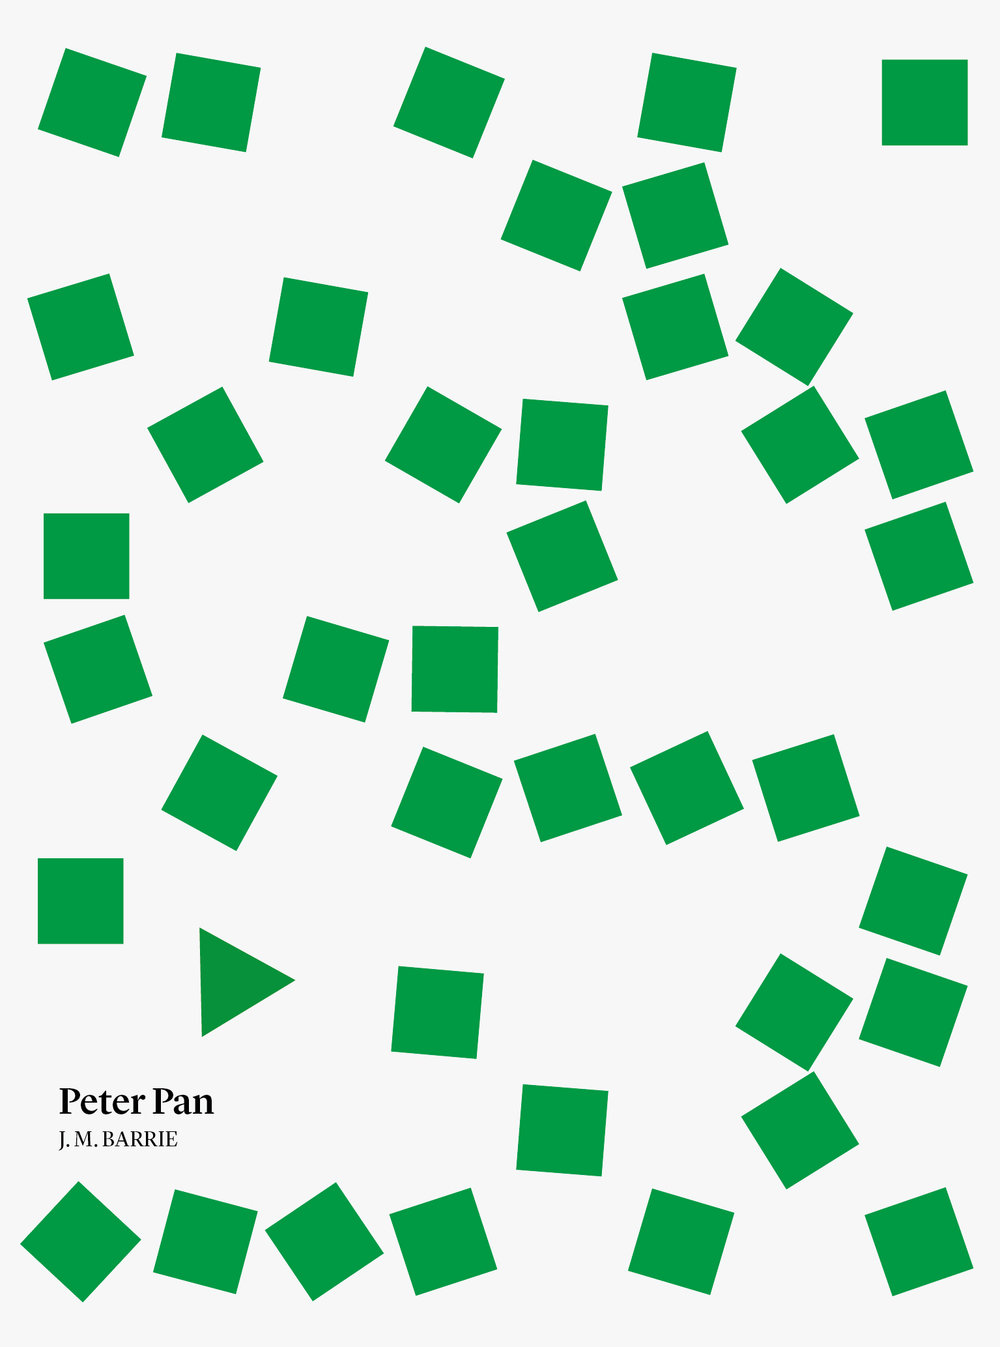 Peter Pan 1  - Playfulness and Solitude